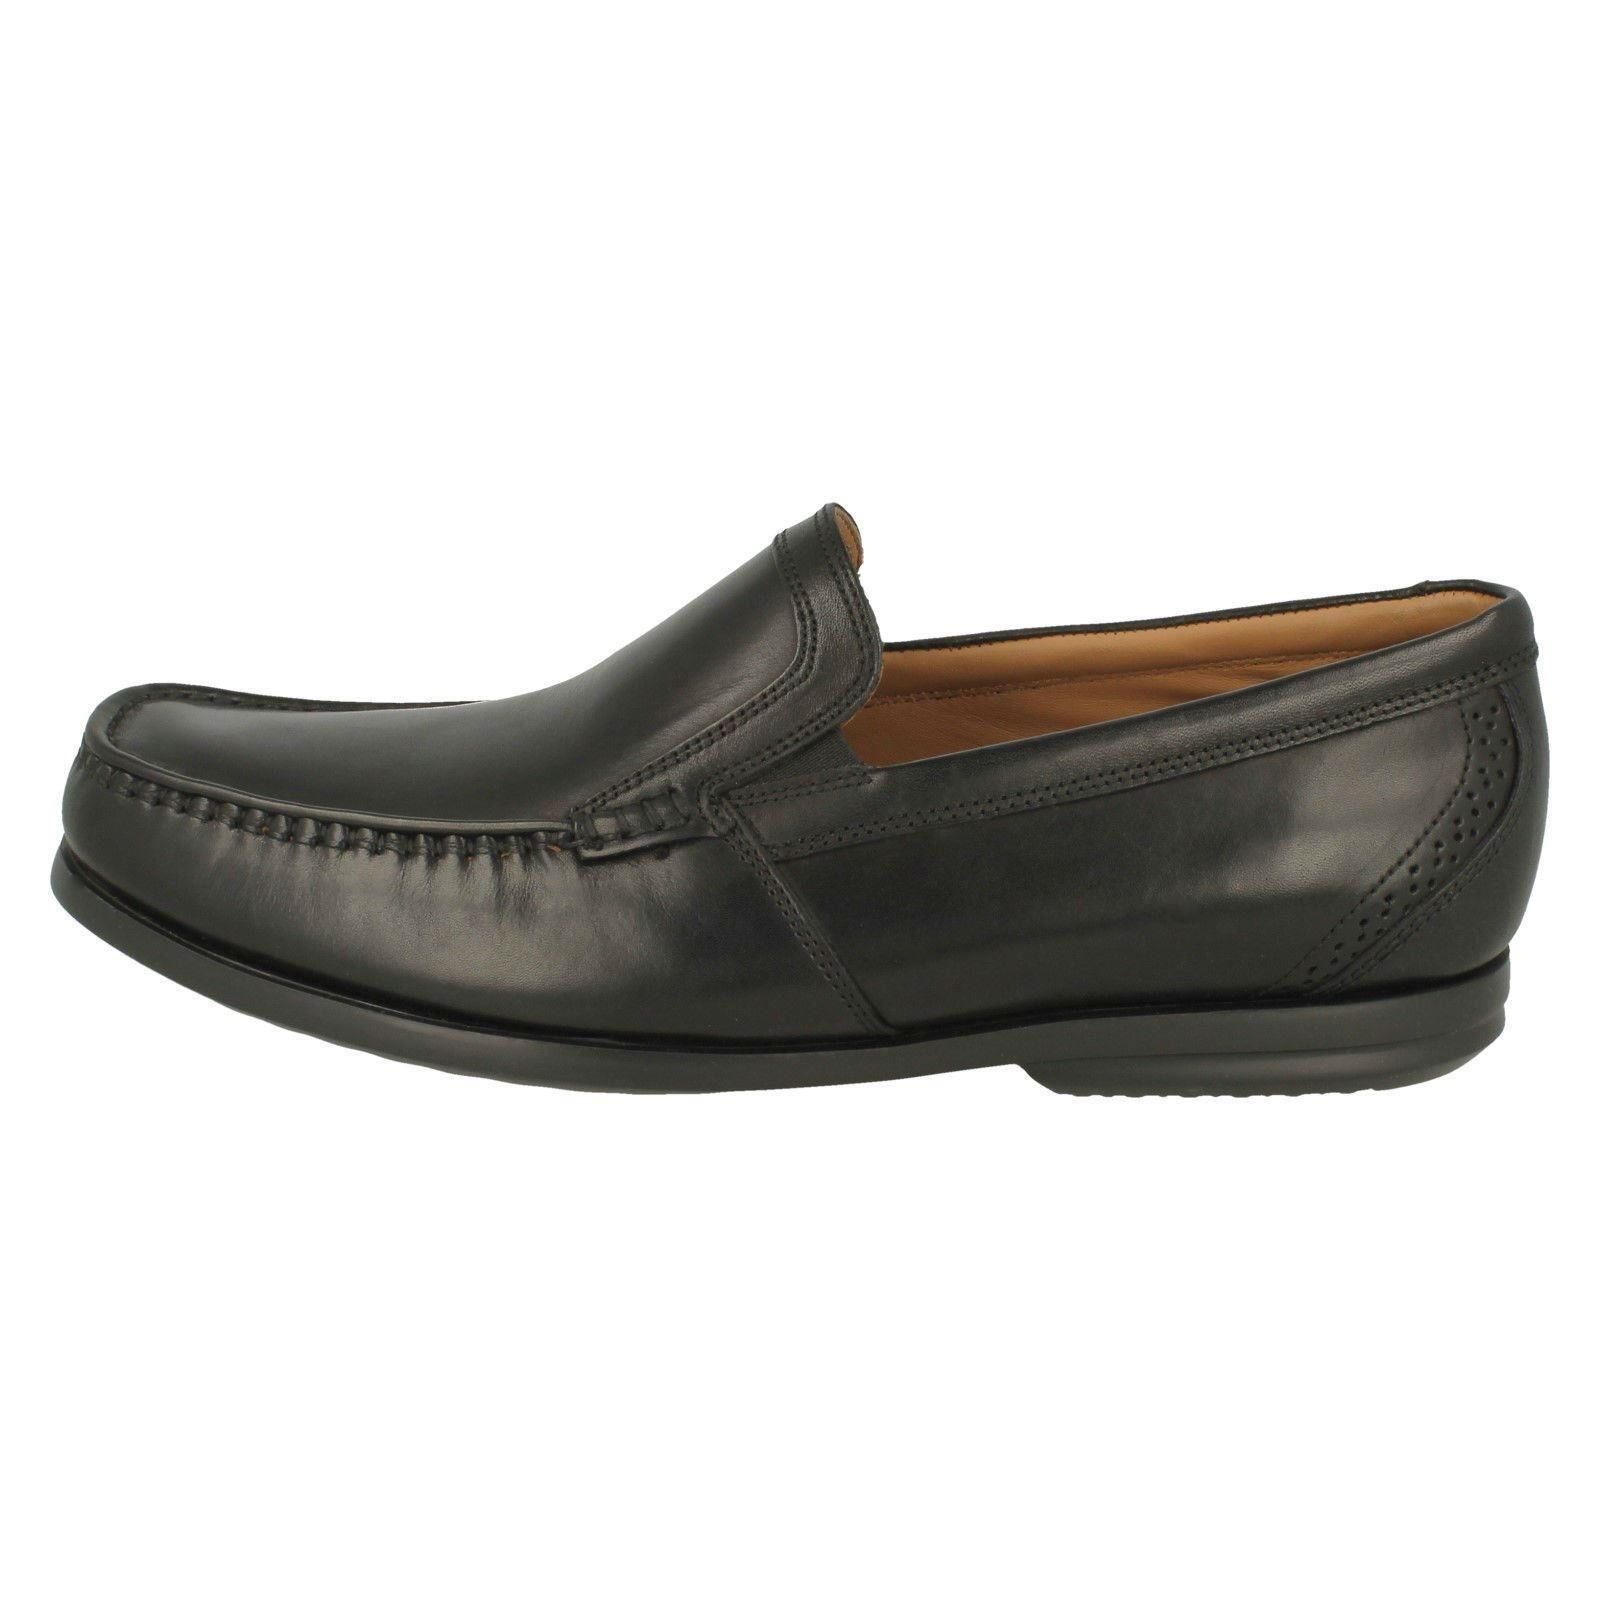 Mens Loafers Clarks Slip On Formal Loafers Mens Un Gala Free 6c3b81